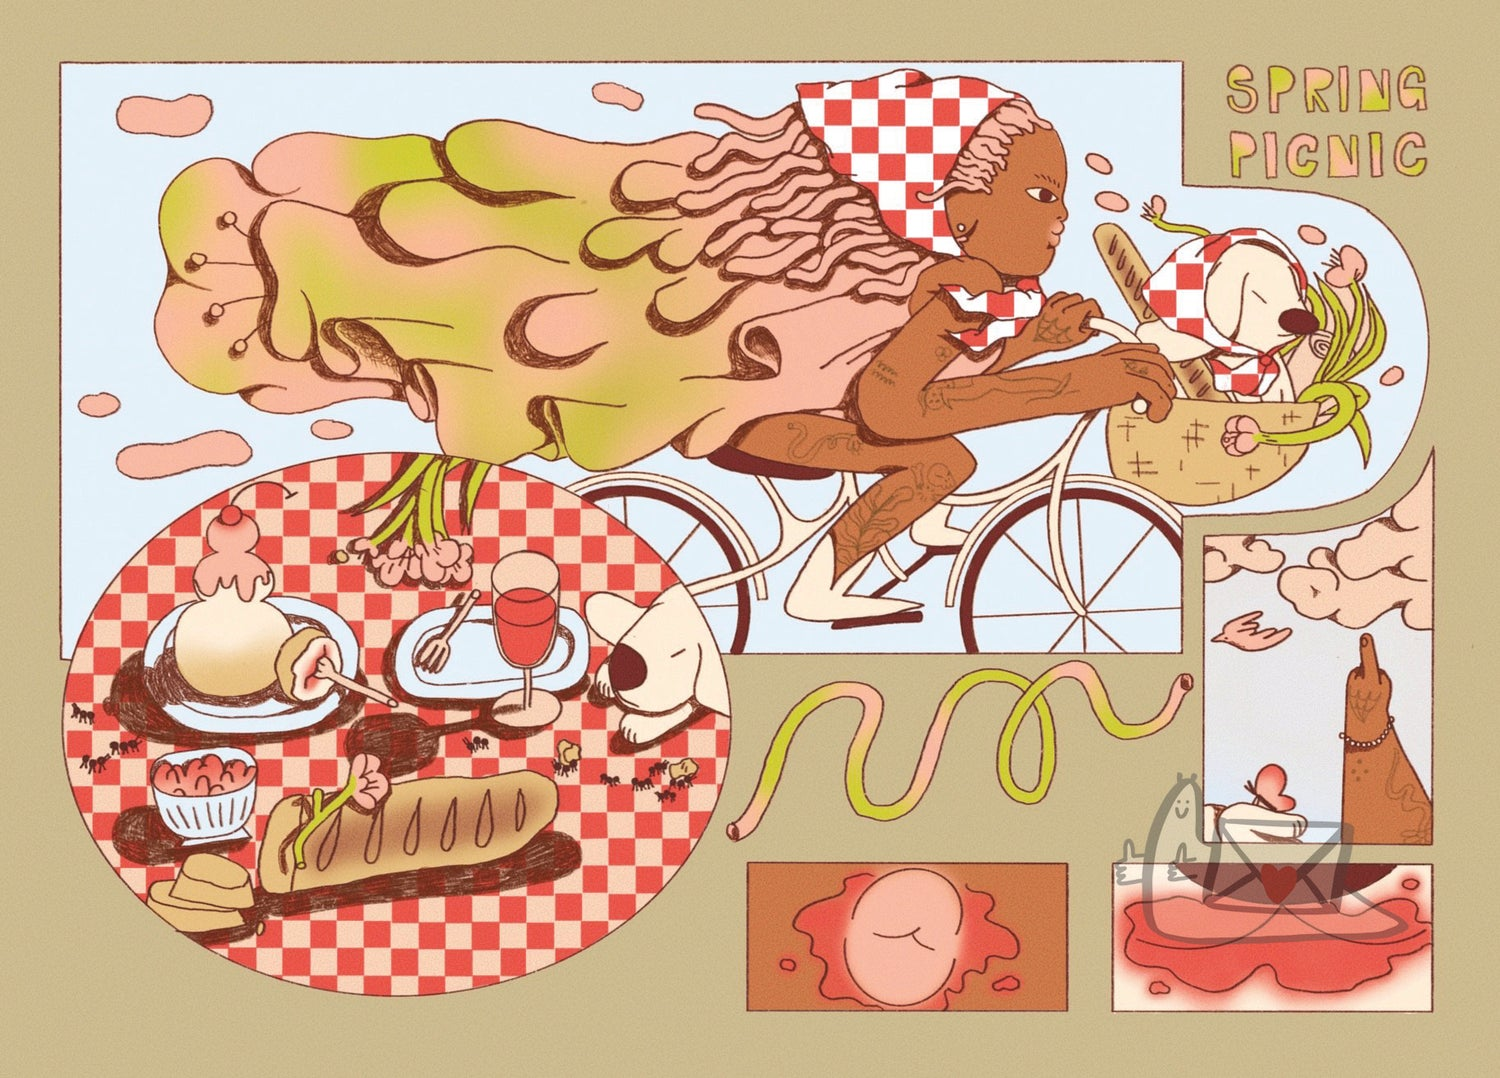 Spring Picnic by Intangible Objects